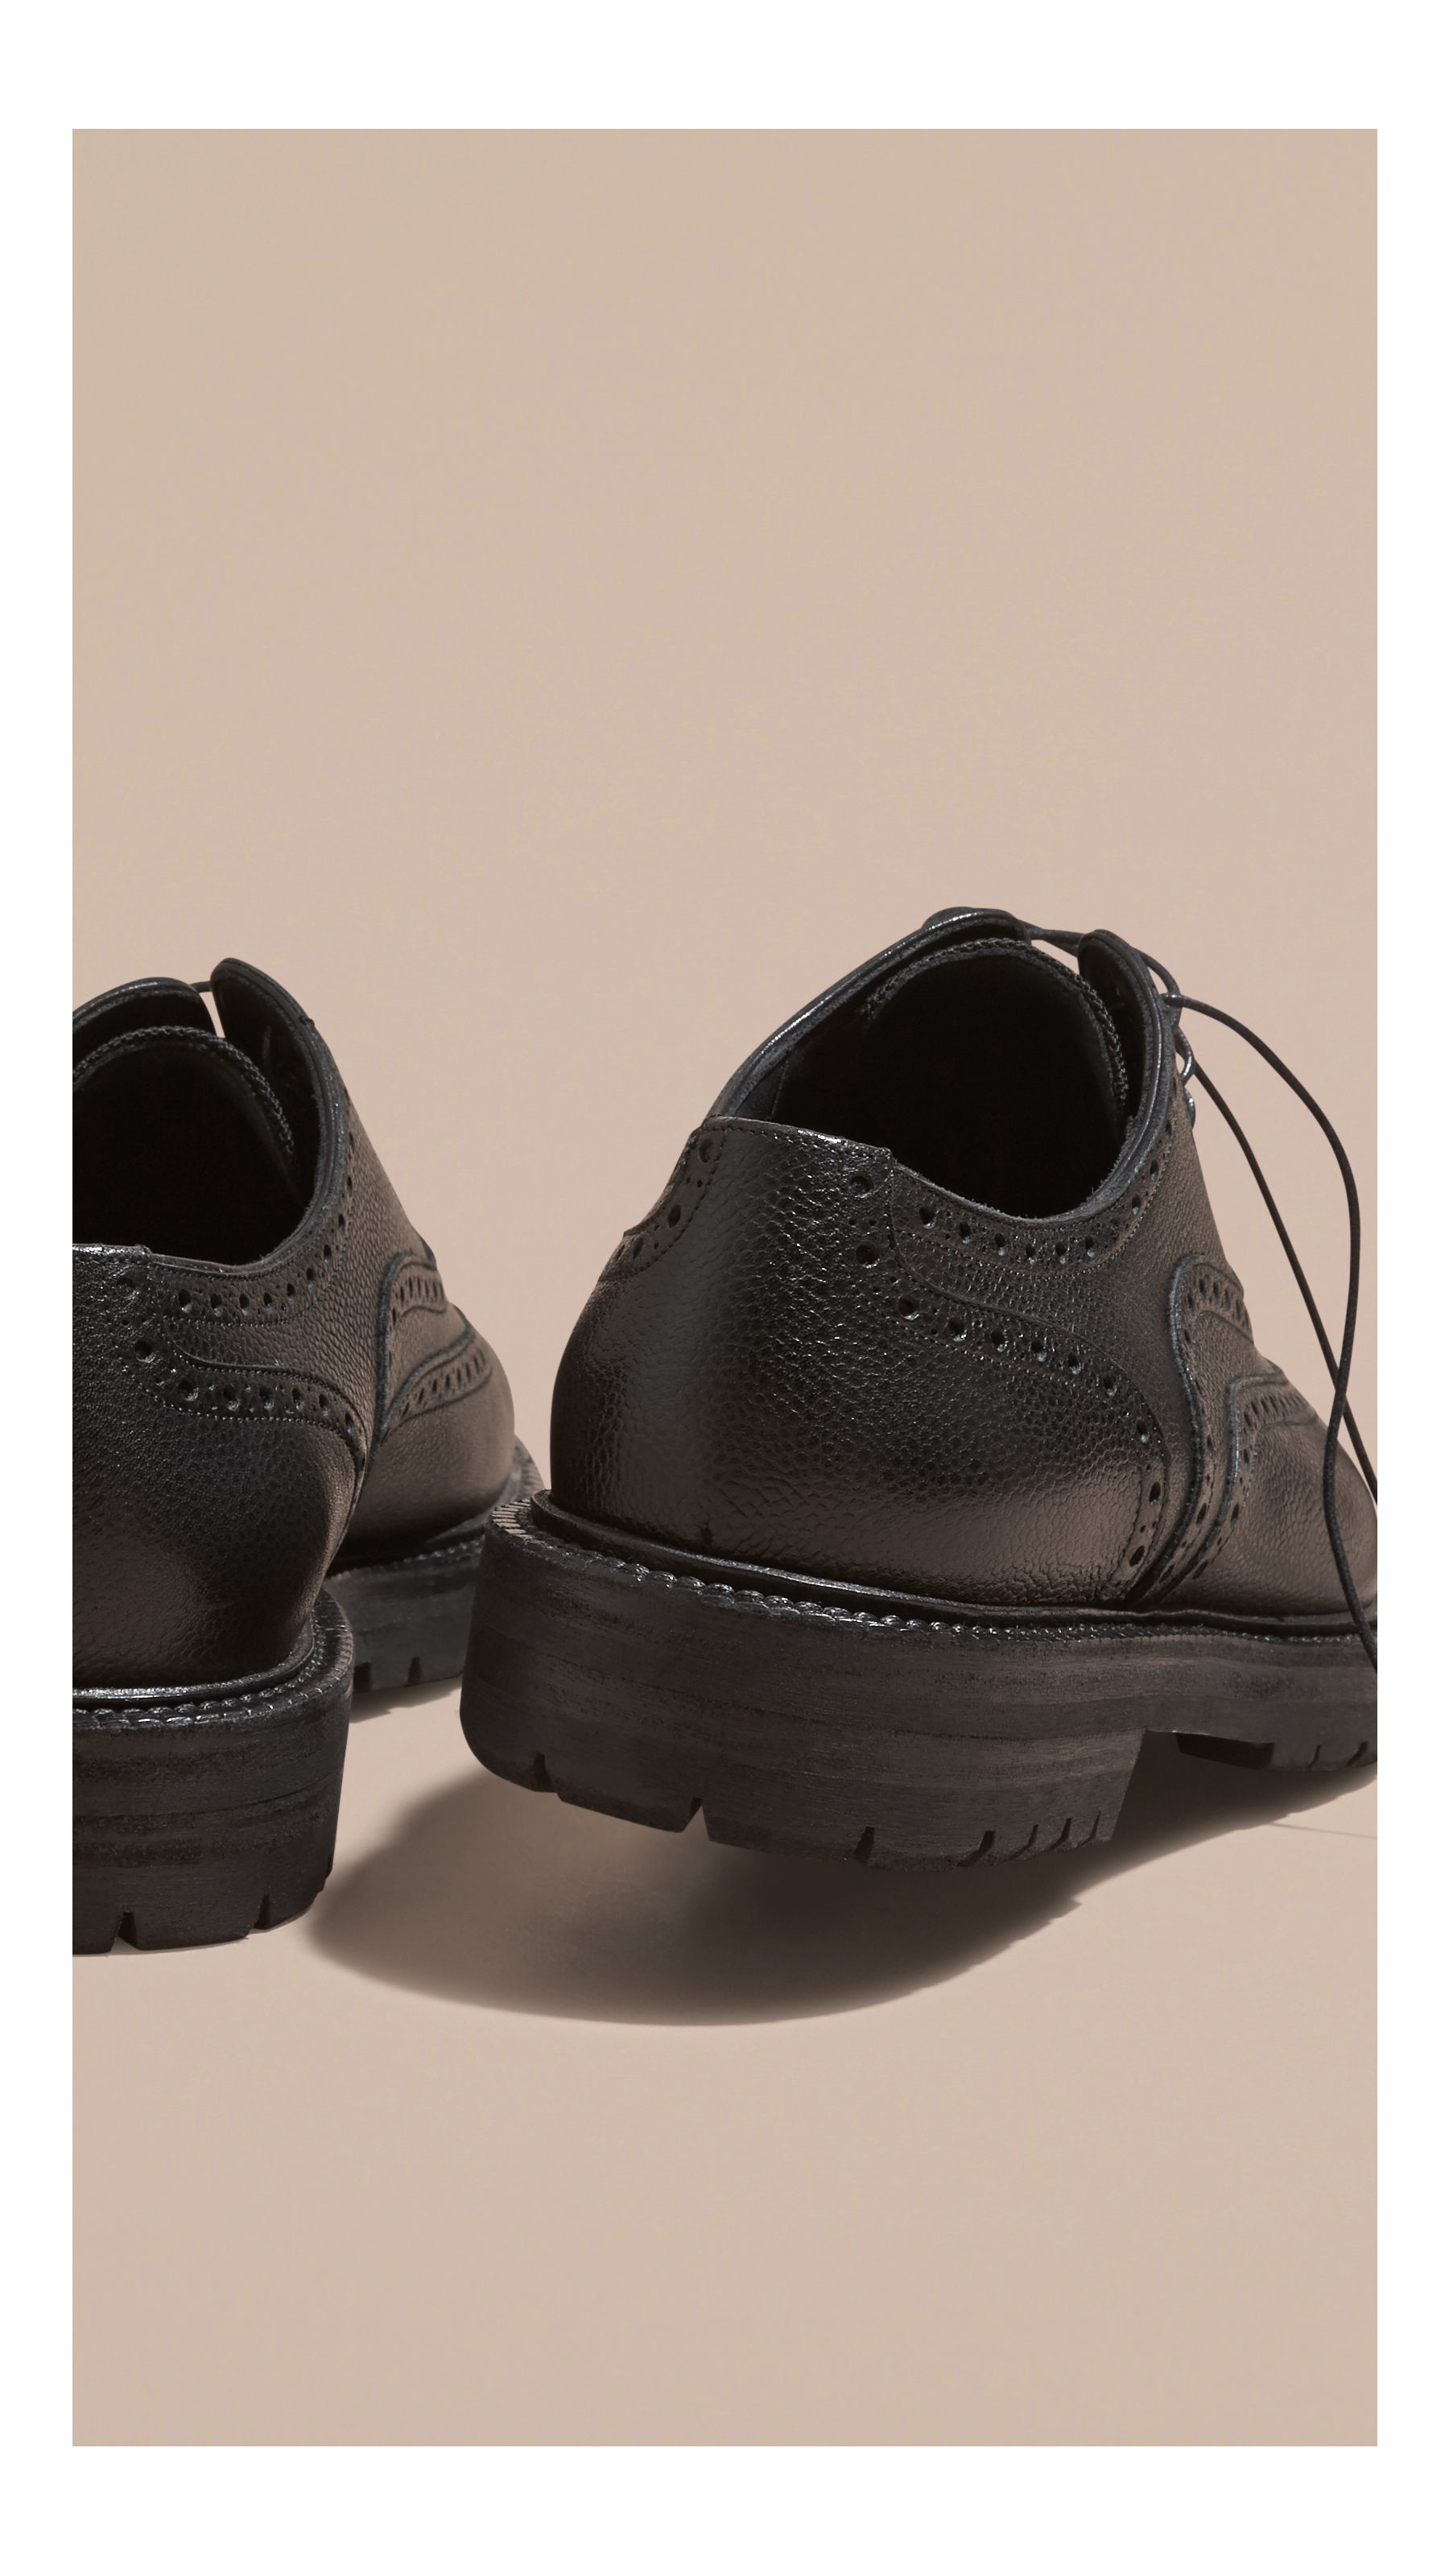 Burberry Grainy Leather Wingtip Brogue With Rubber Sole